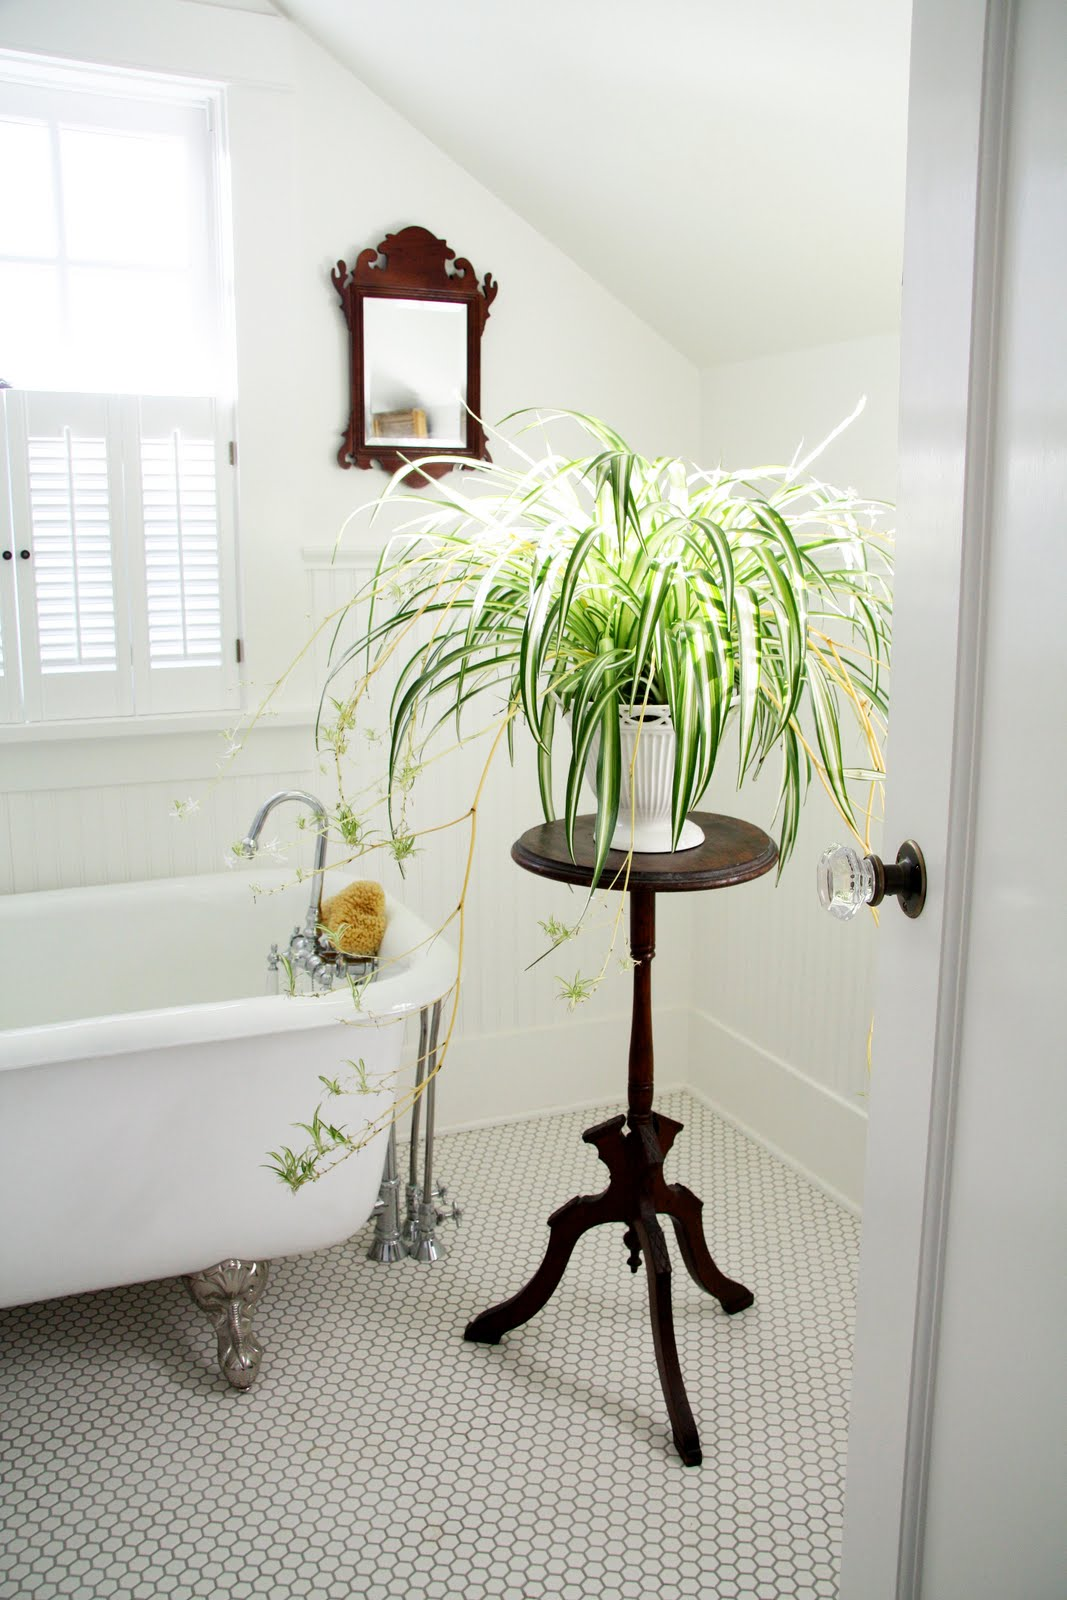 A blooming spider plant thrives inbathroom humidity.Image Source: Homedit.com